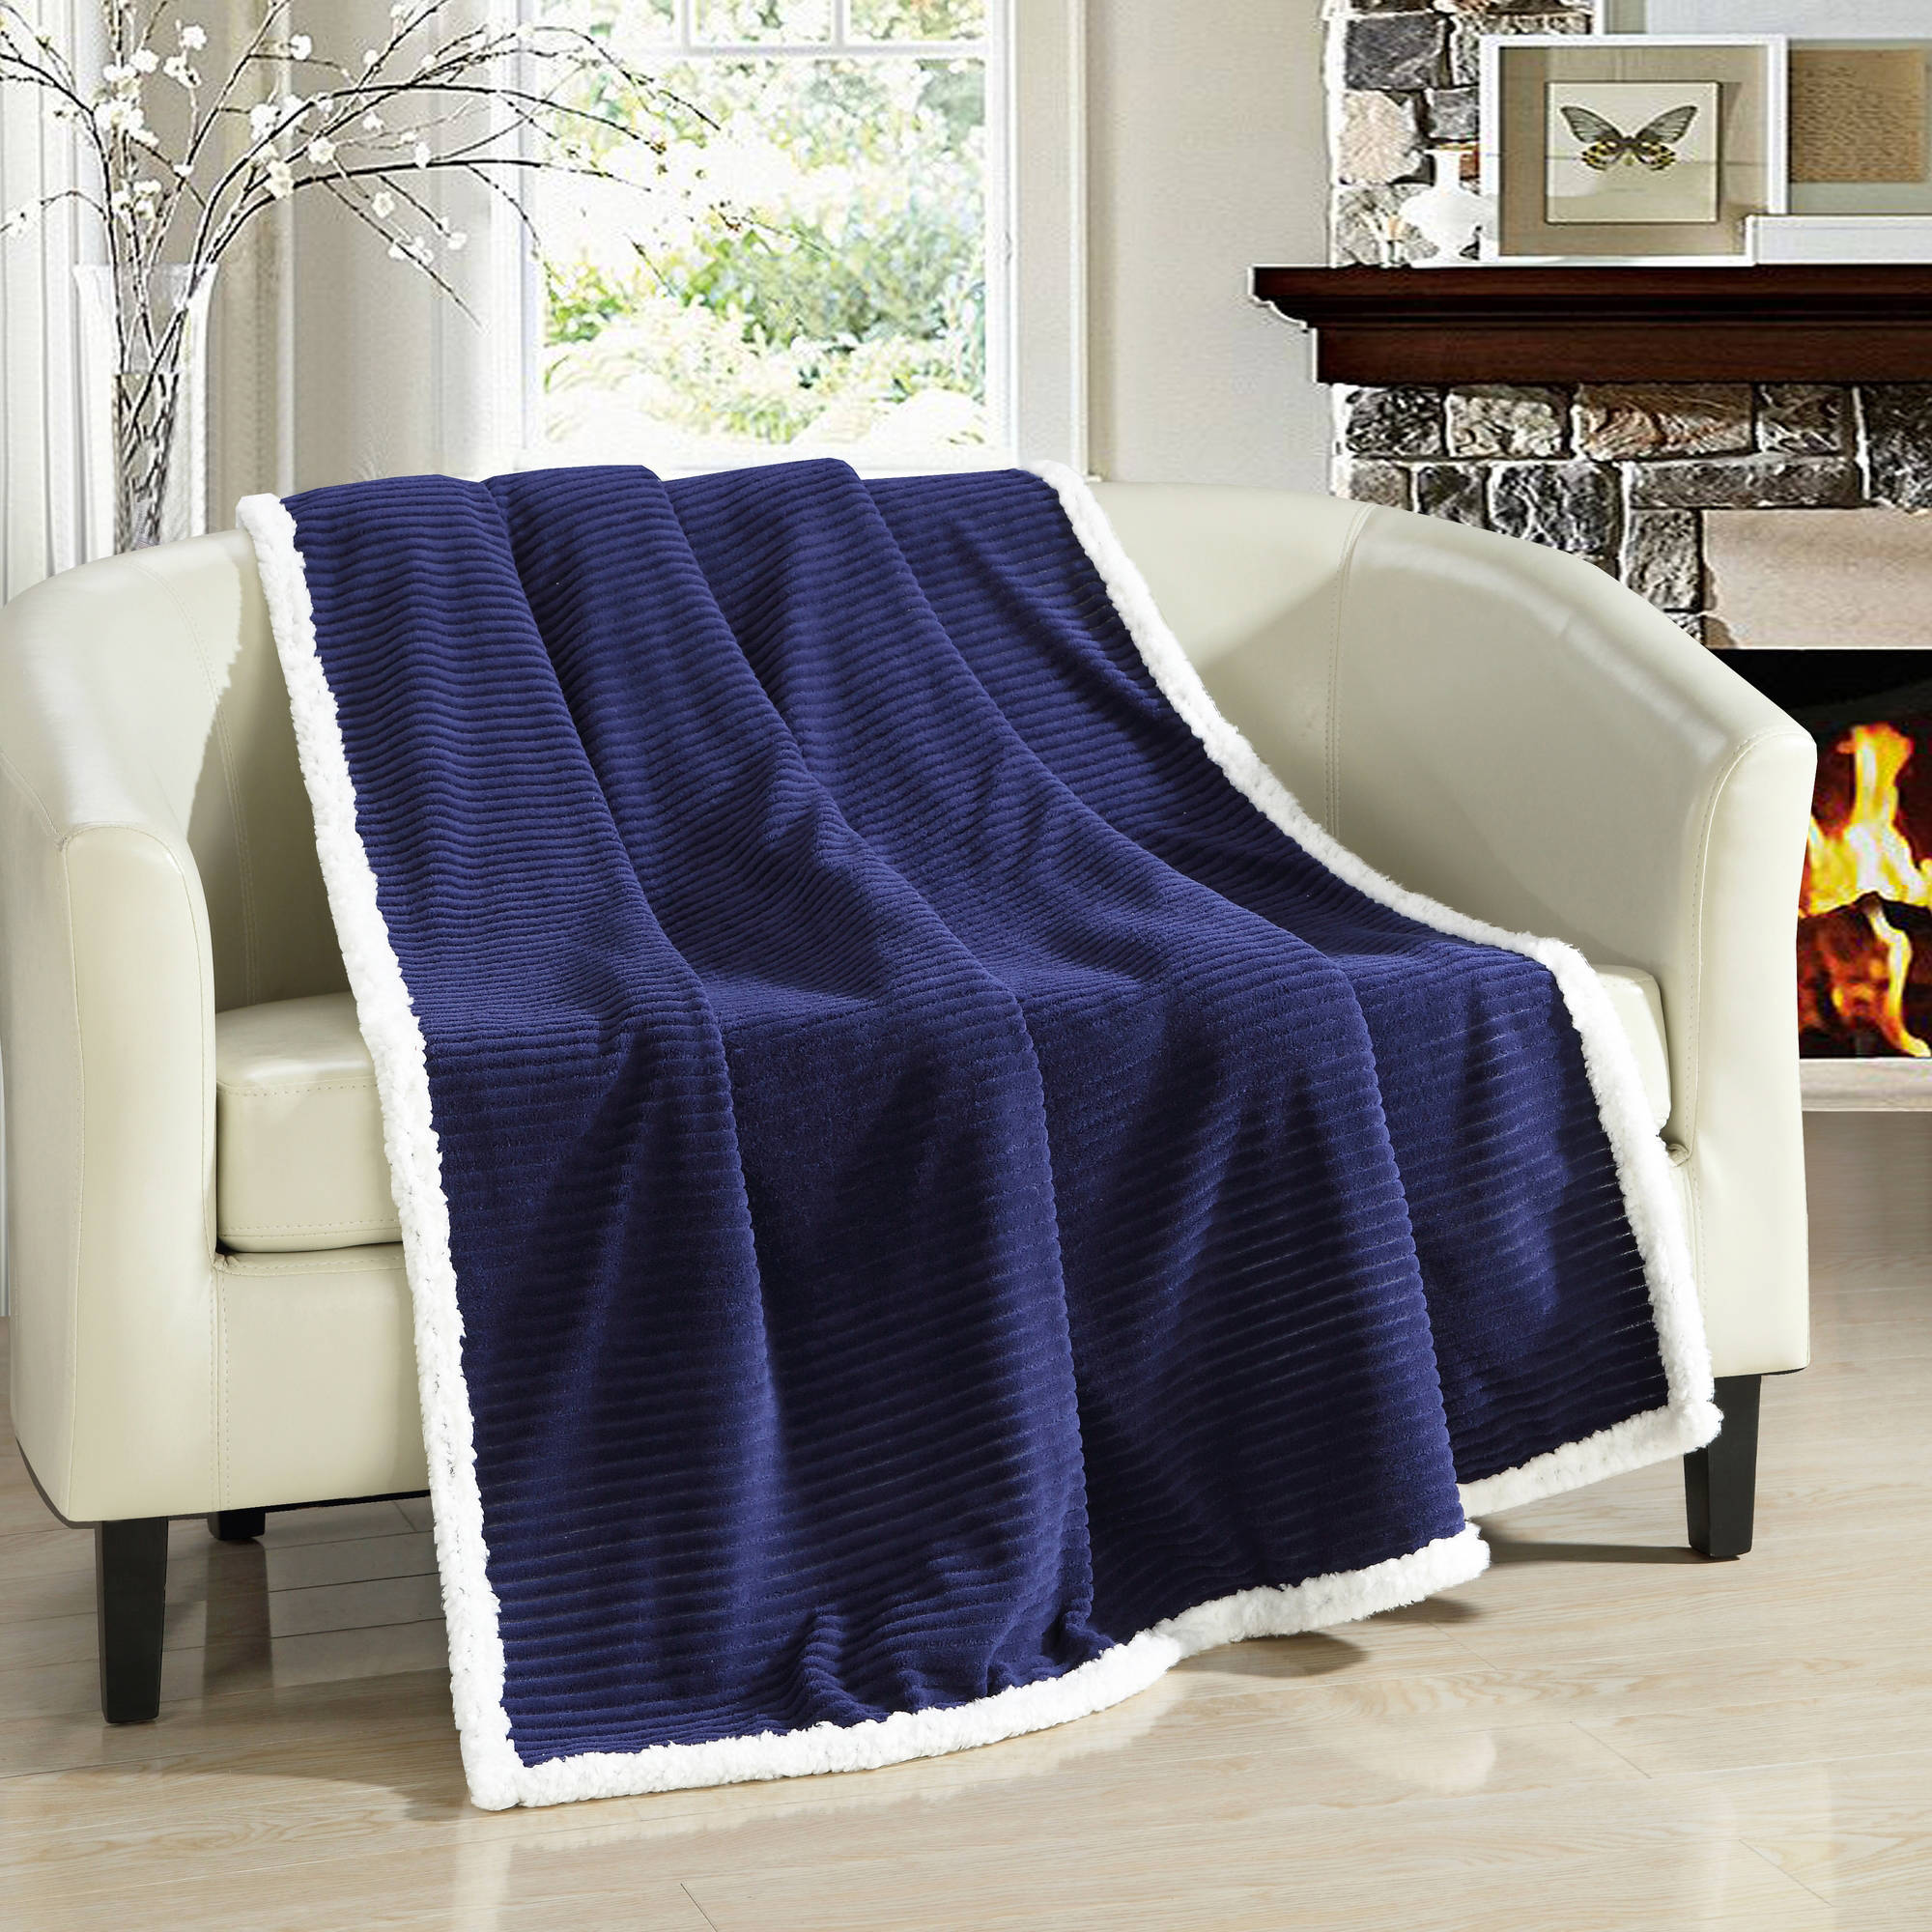 Chic Home Arezza 1-Piece Throw Blanket